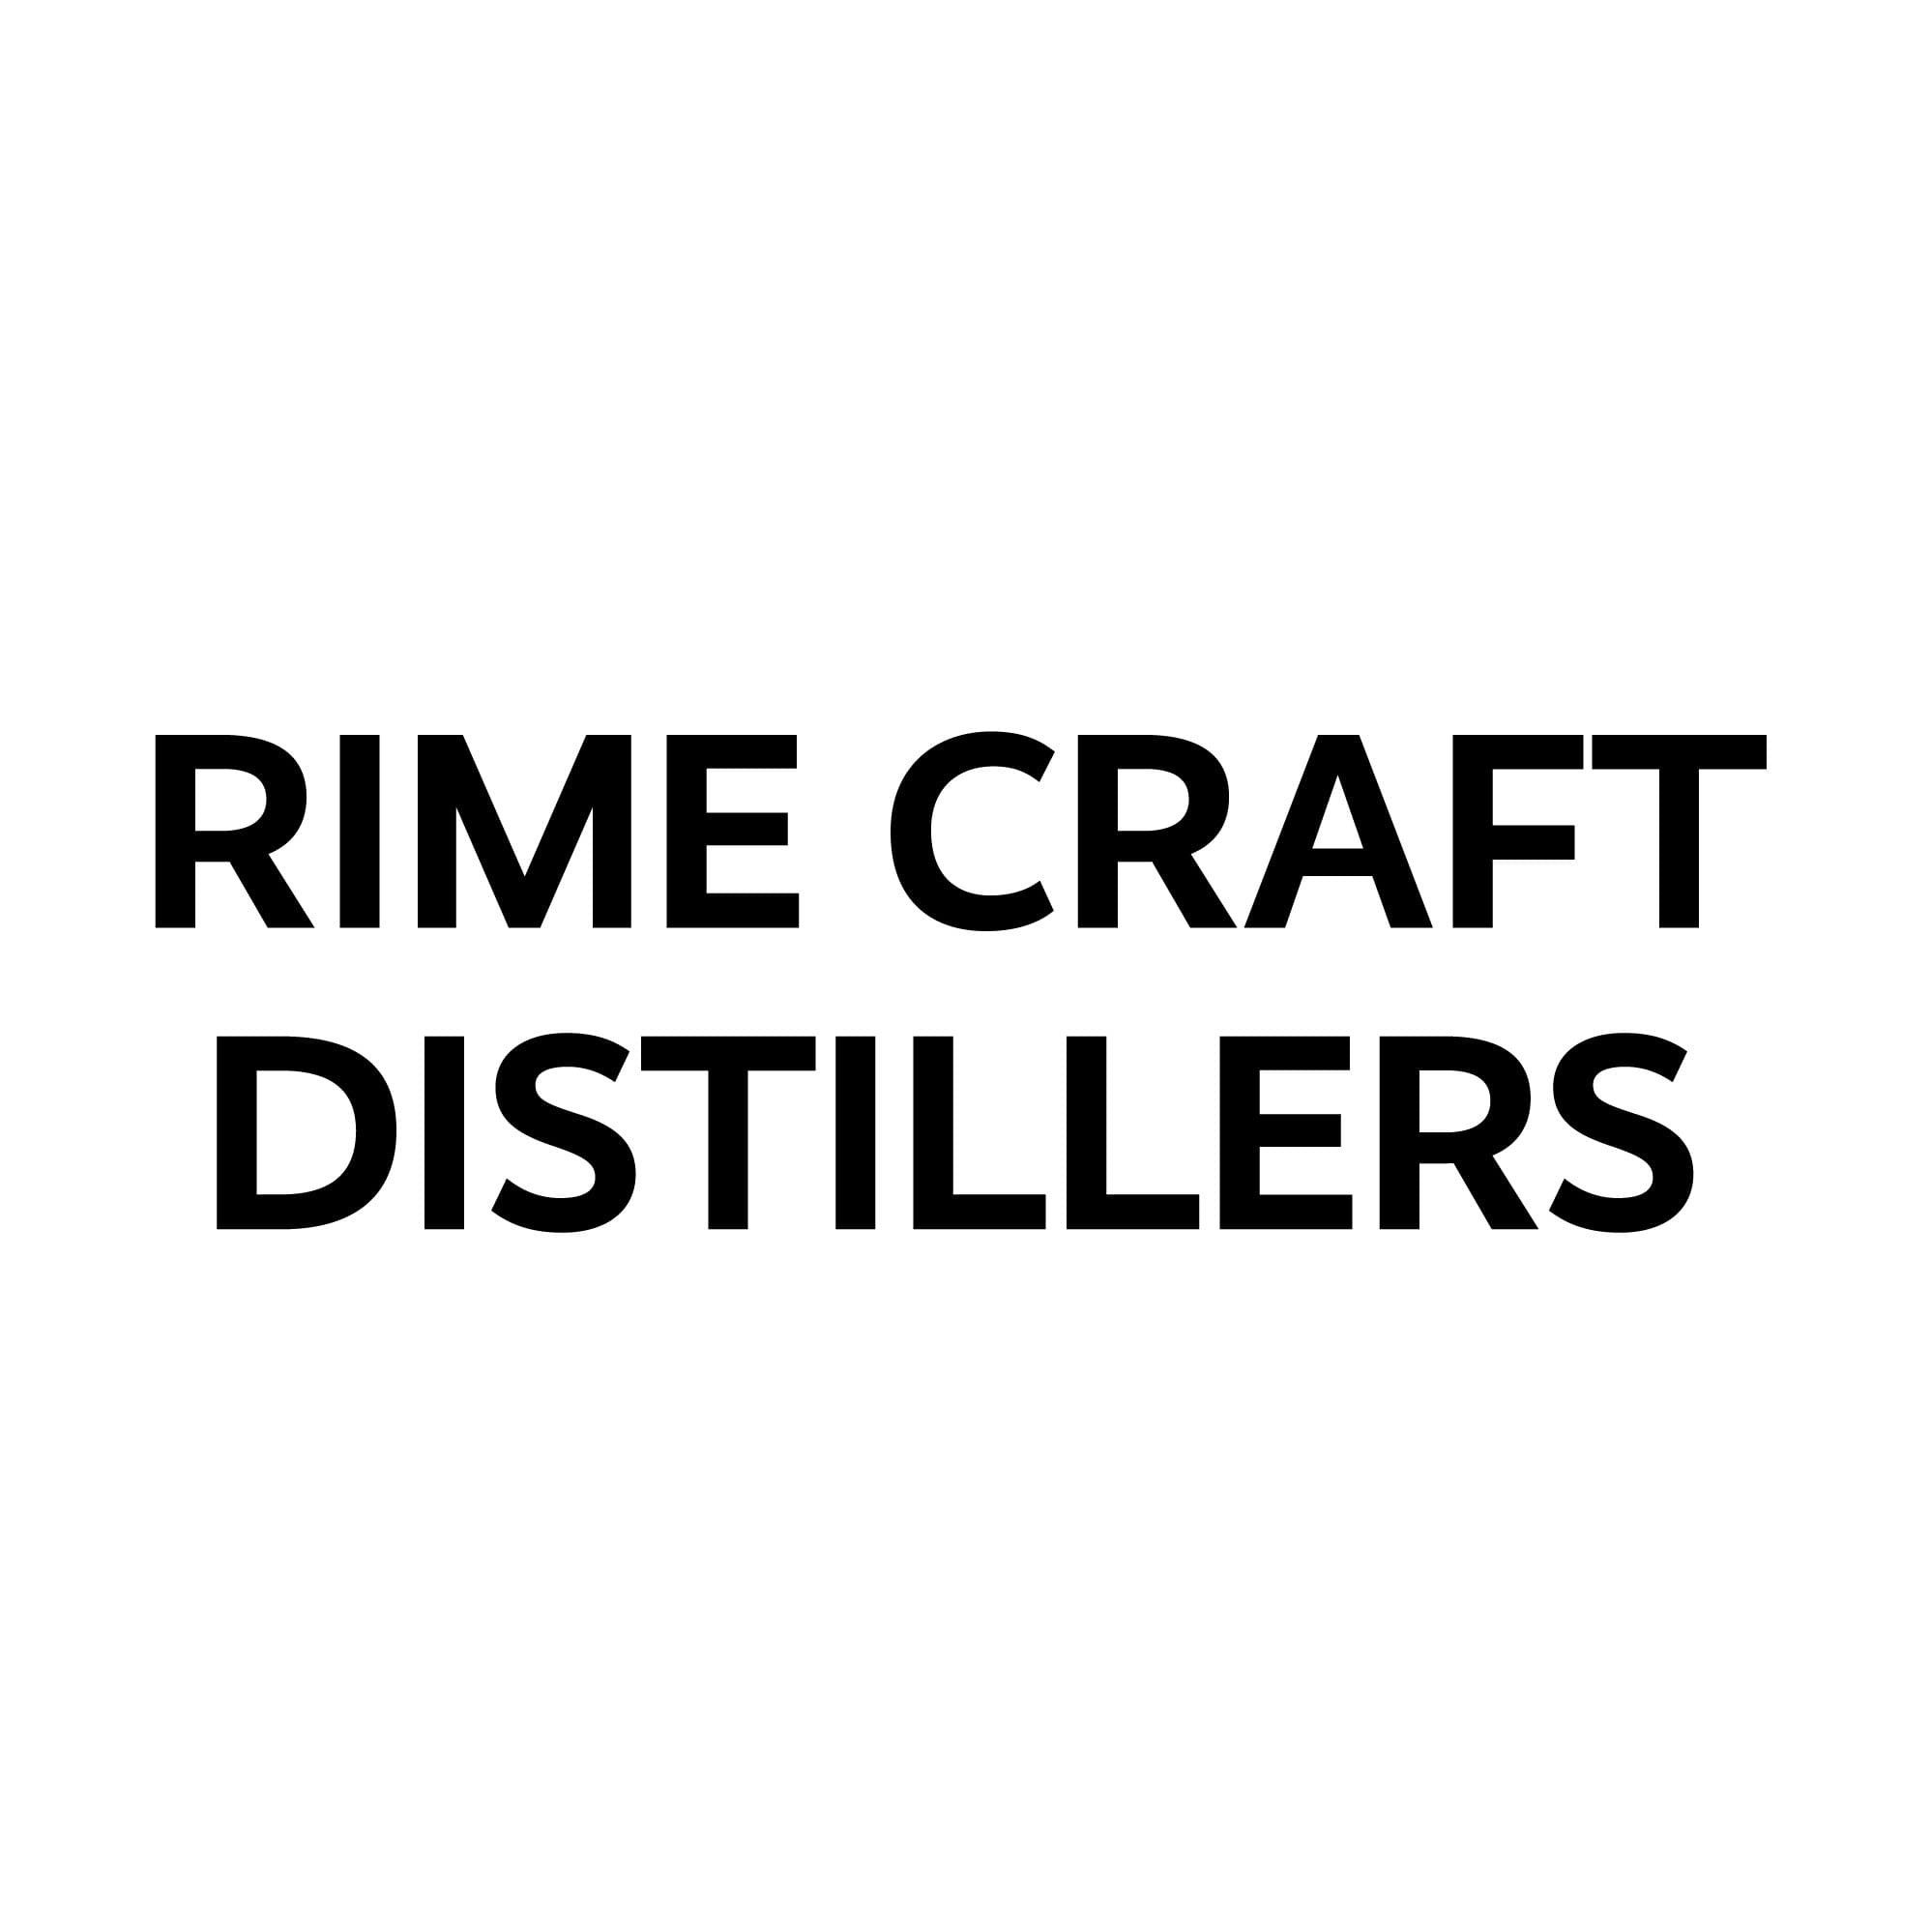 Rime Craft Distillers